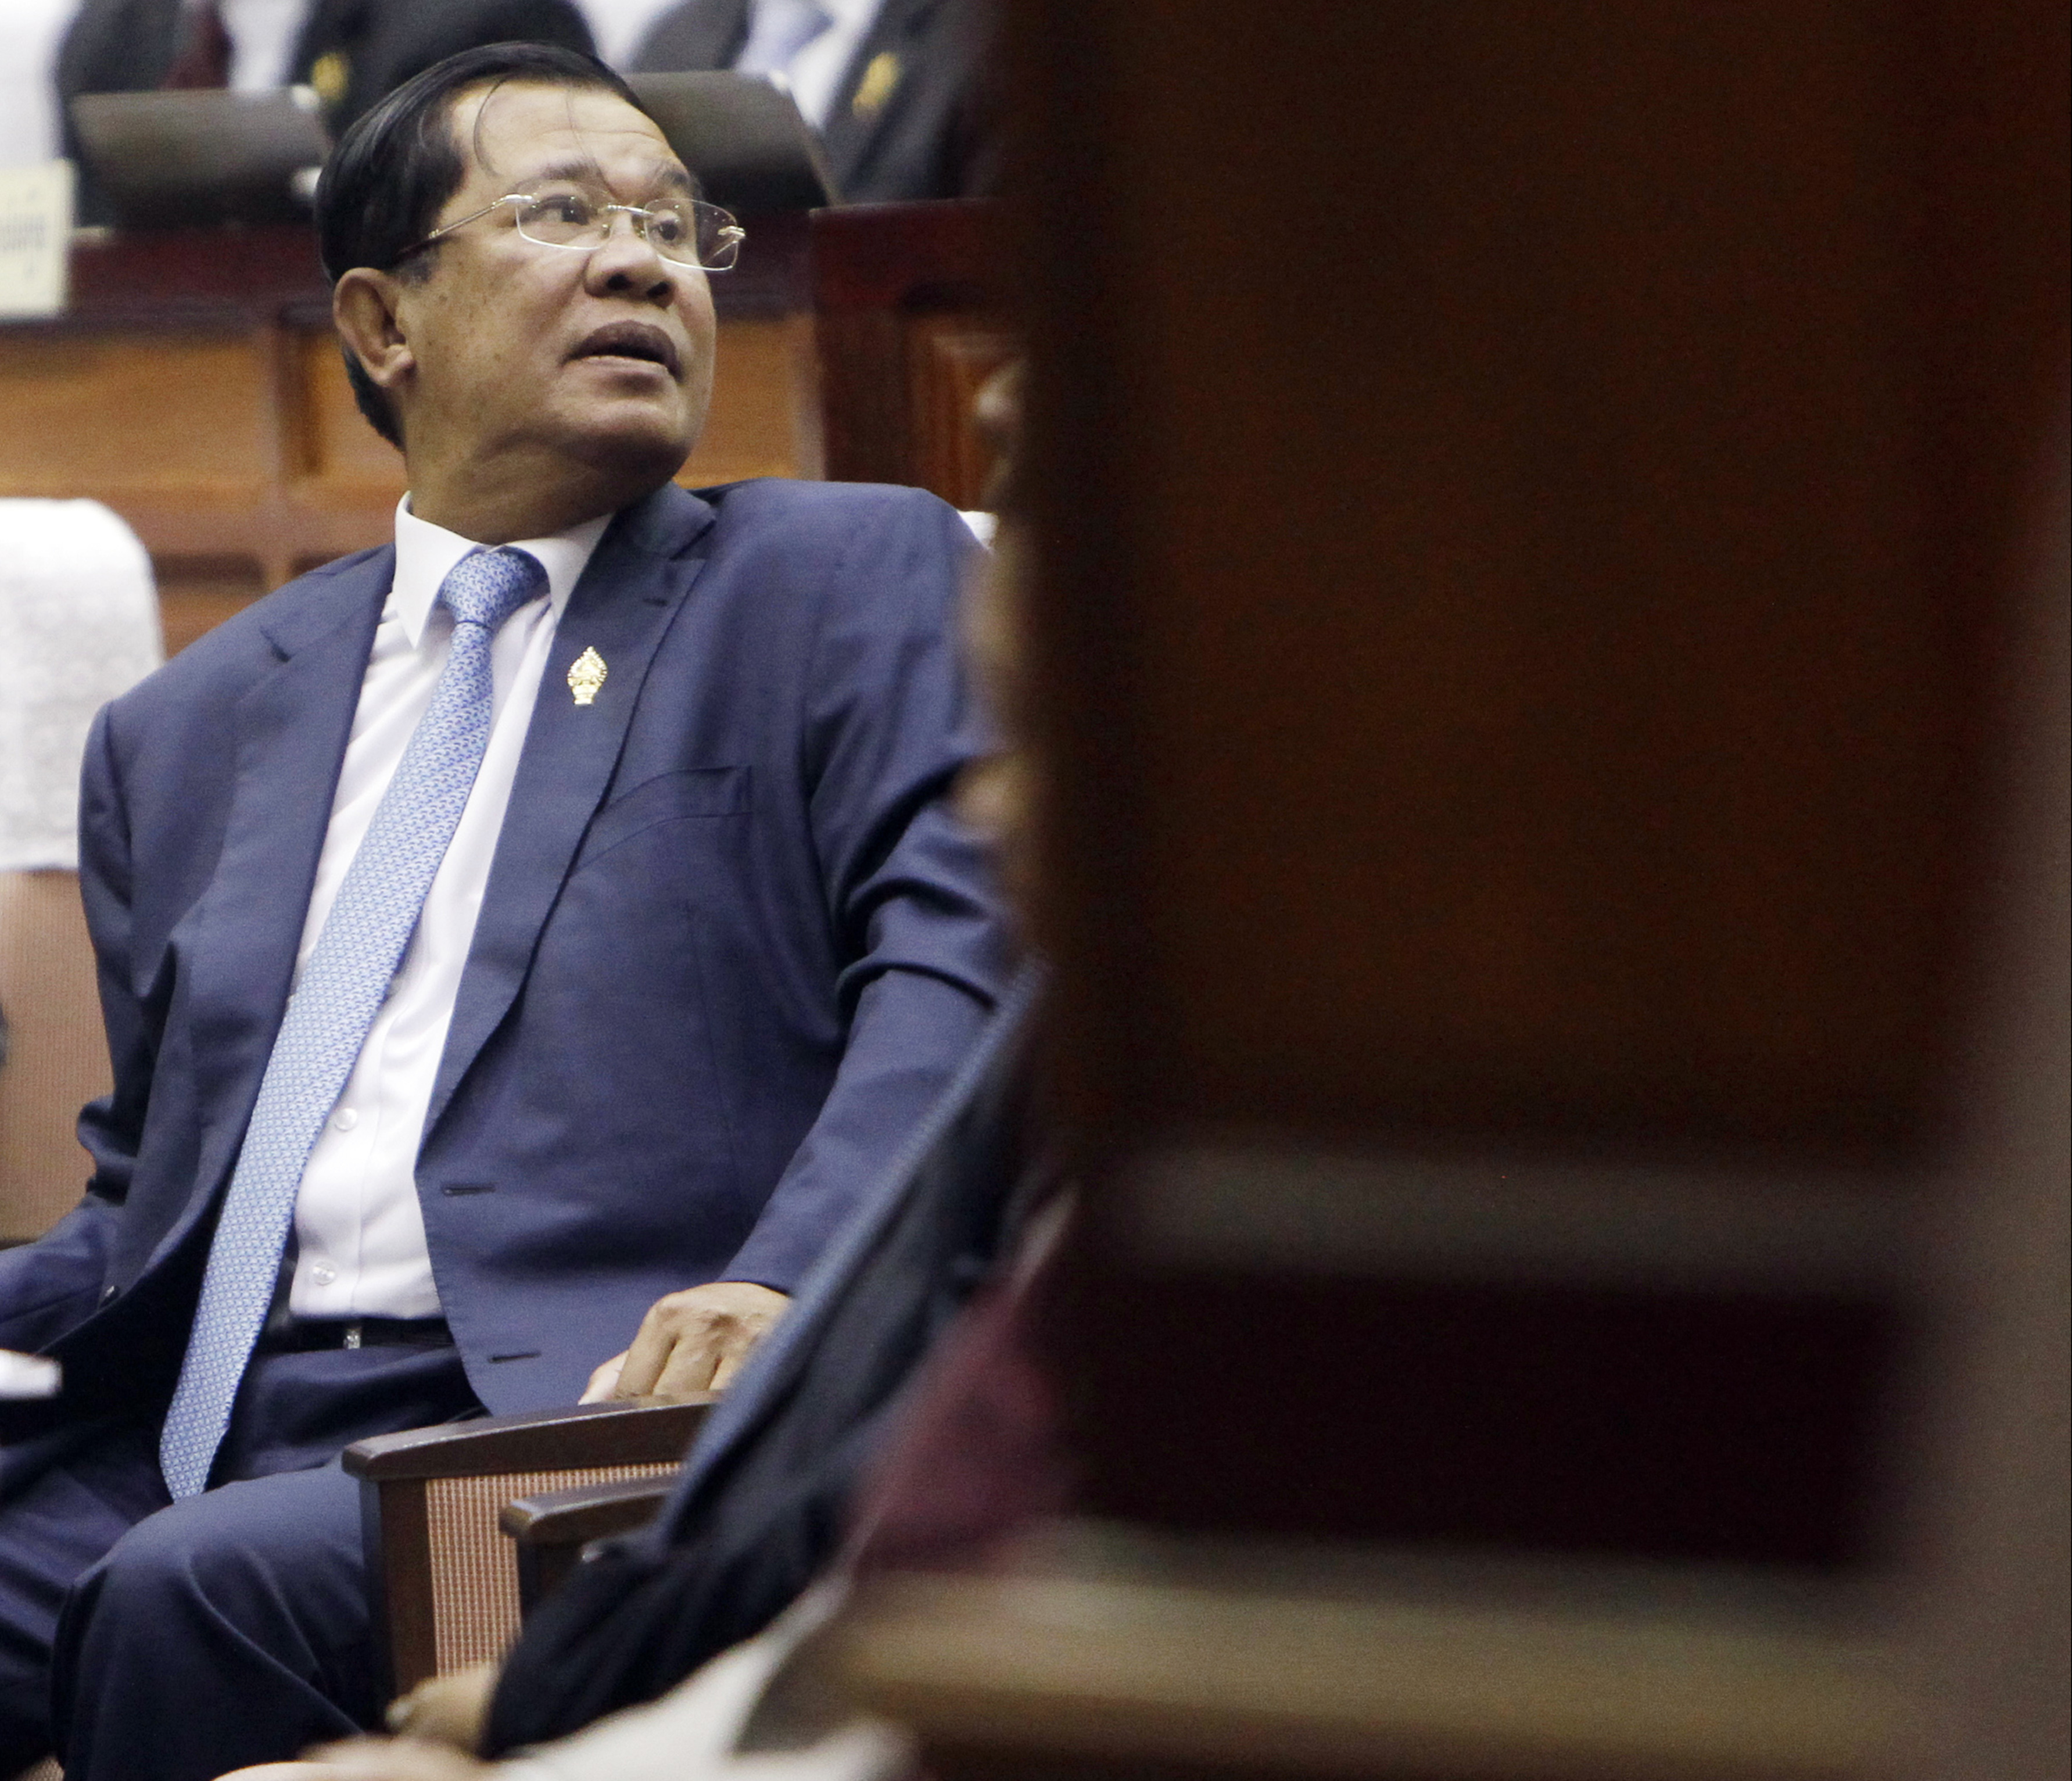 Cambodia's Prime Minister Hun Sen waits in the hall of National Assembly before a meeting, in Phnom Penh, Cambodia, Monday, Feb. 20, 2017.